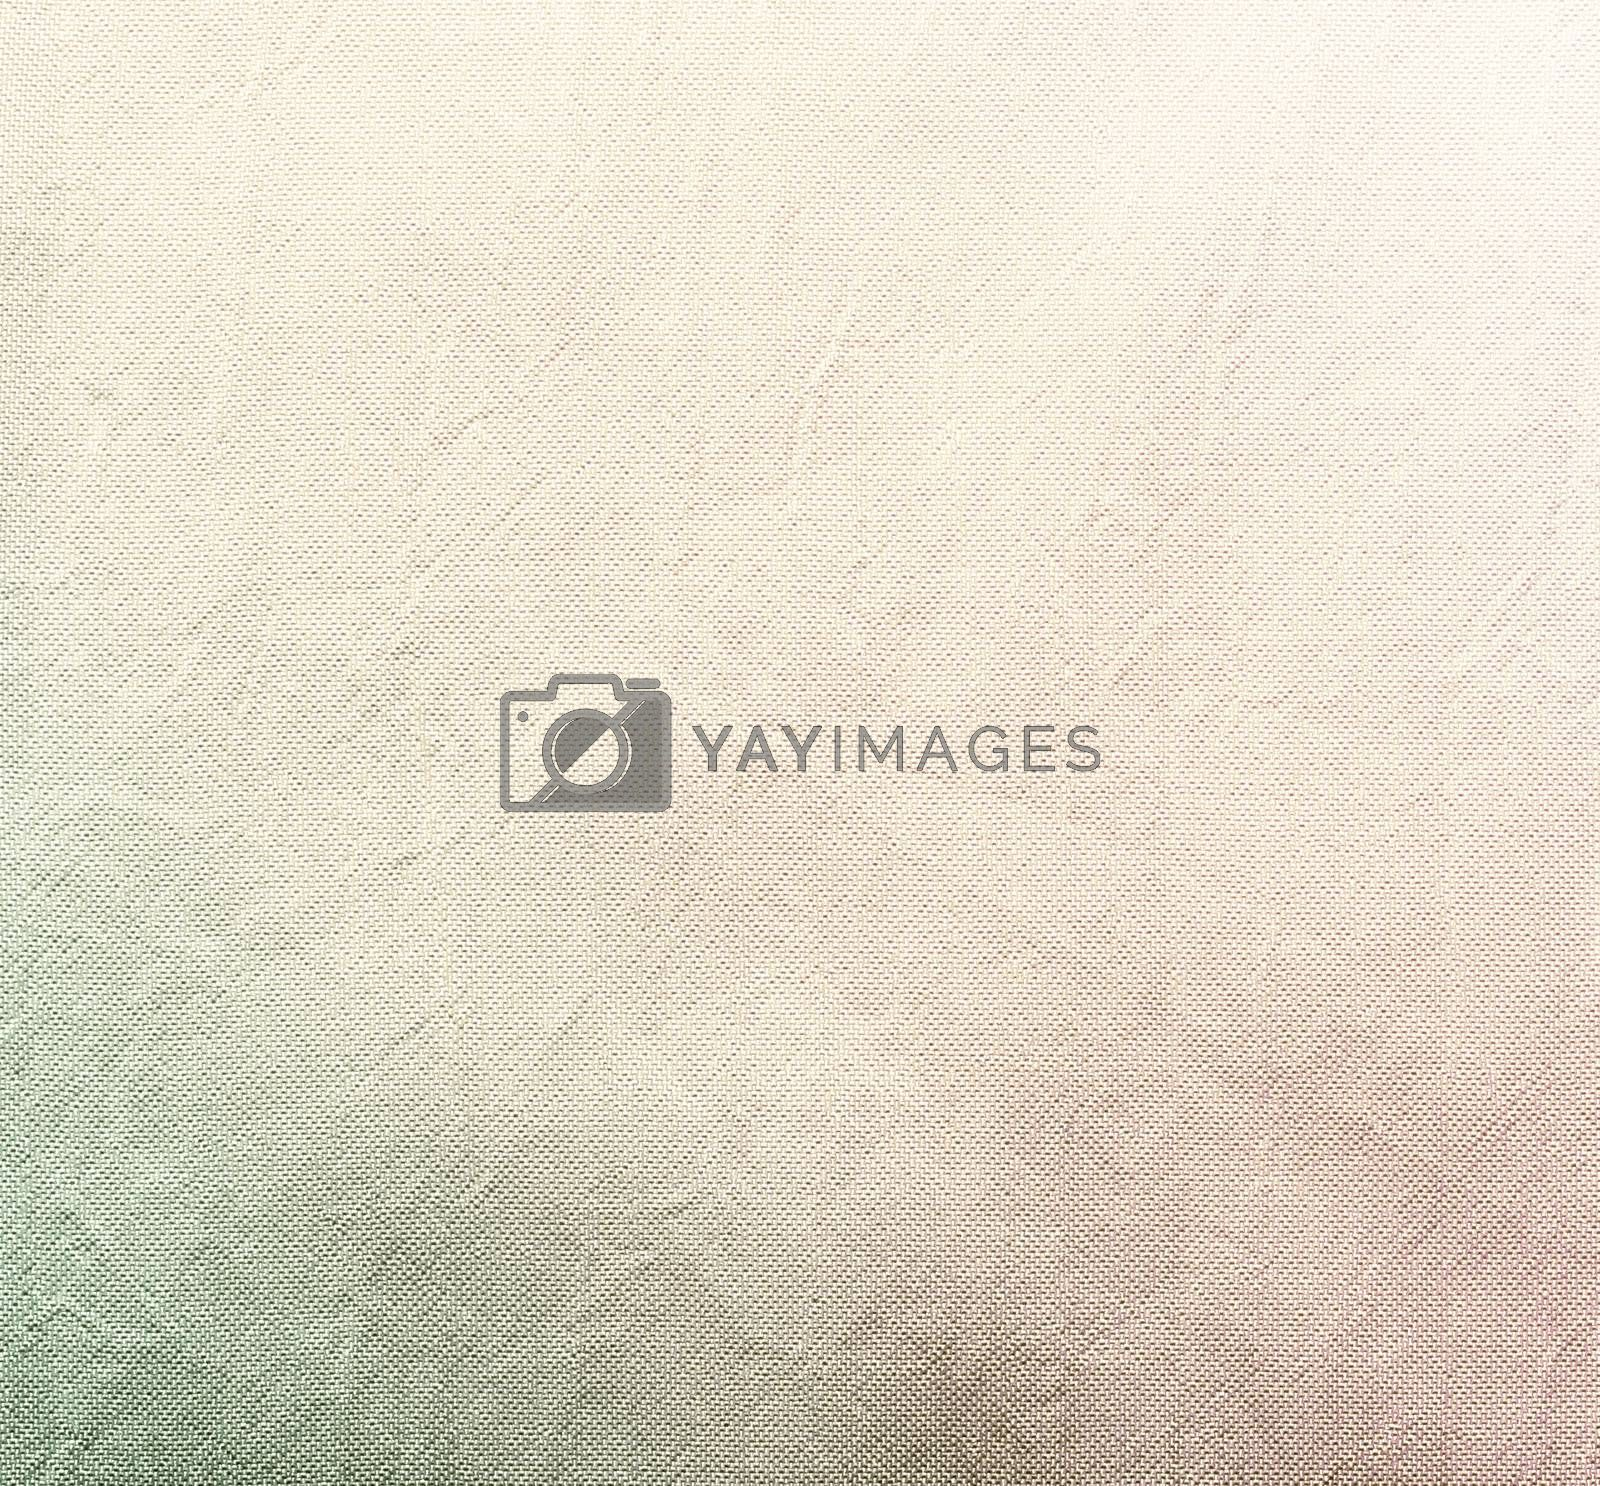 Royalty free image of Fabric texture by vadimmmus